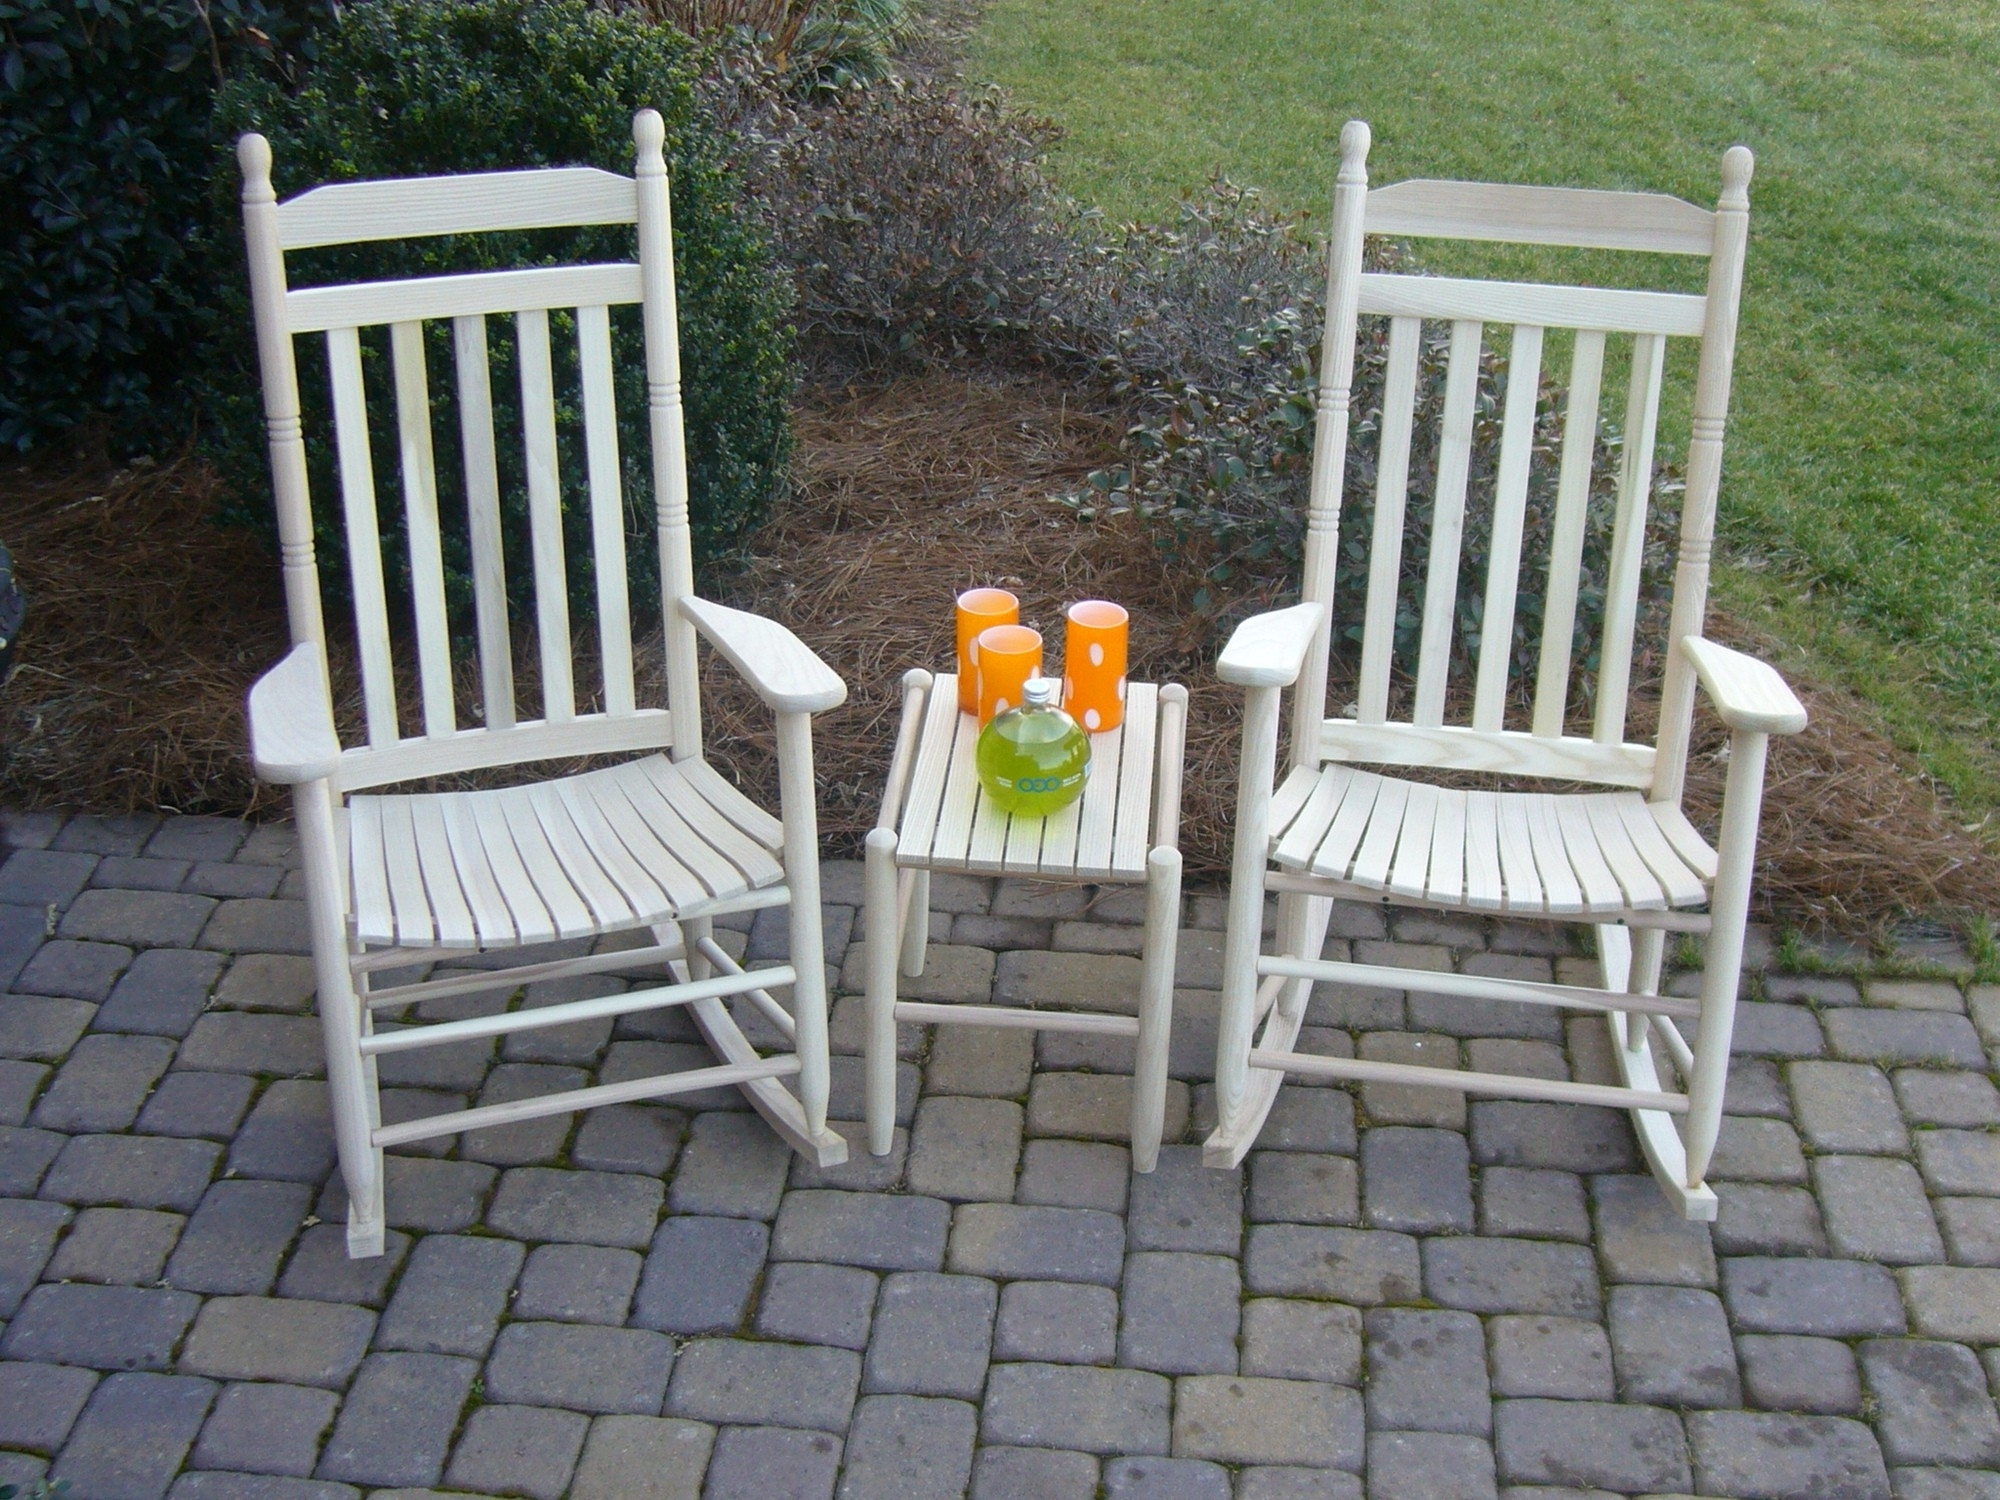 Rocking Chairs For Porch Intended For Famous Acceptable Rocking Chair For Porches With Additional Chair King With (View 15 of 15)